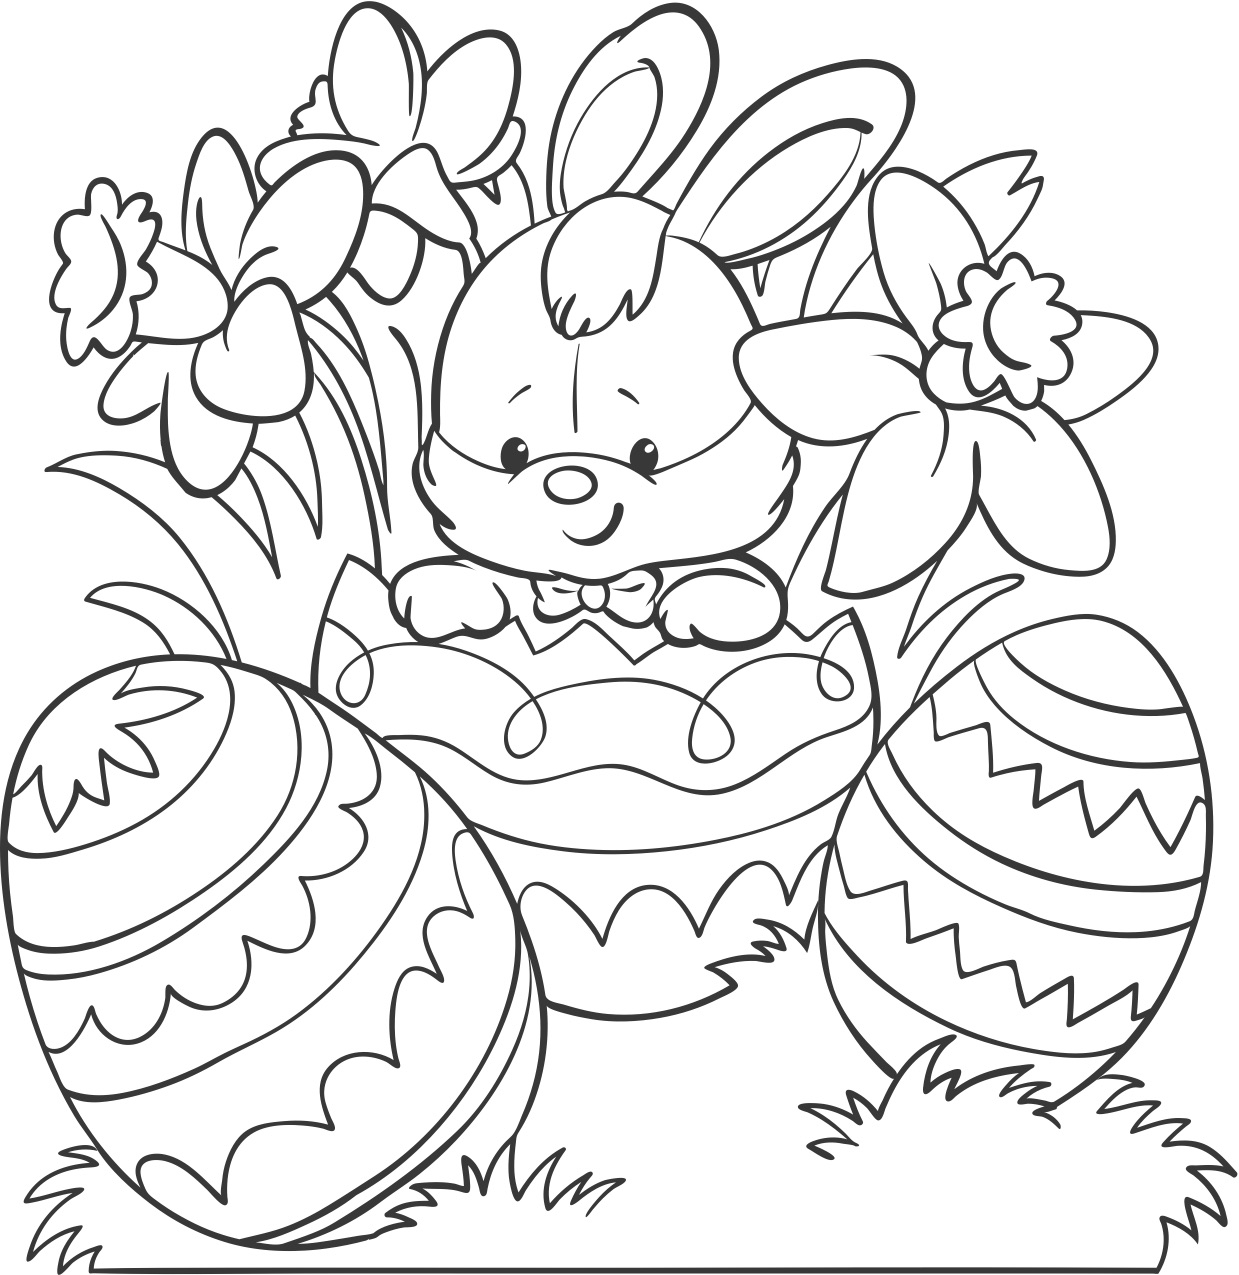 Easter Colouring Download - Print what matters | free printable easter coloring pages for toddlers